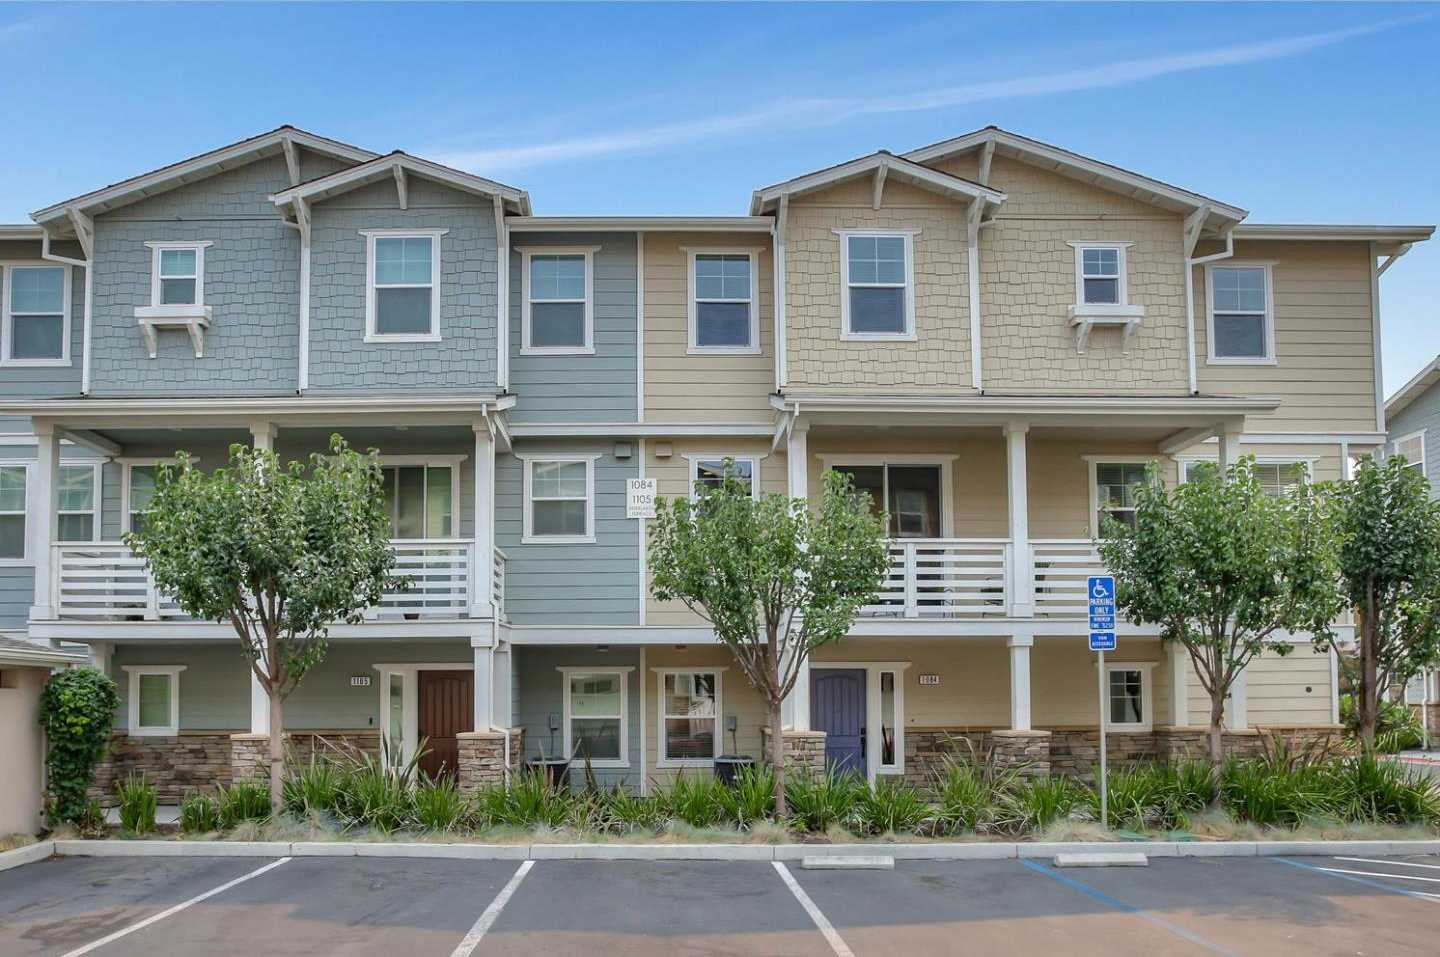 $1,499,800 - 4Br/4Ba -  for Sale in Sunnyvale